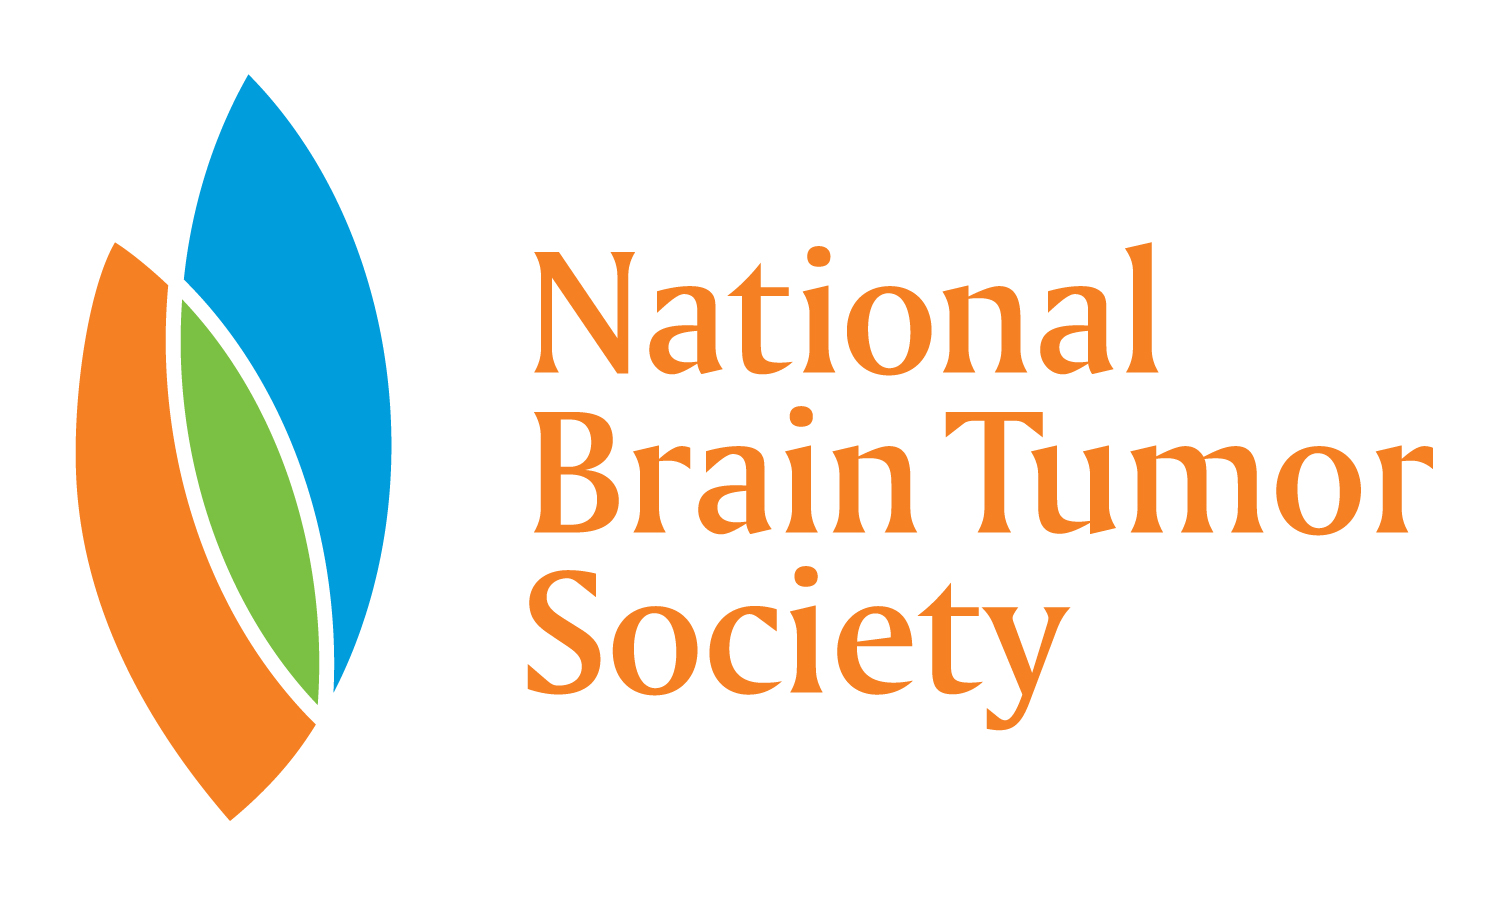 National Brain Tumor Society